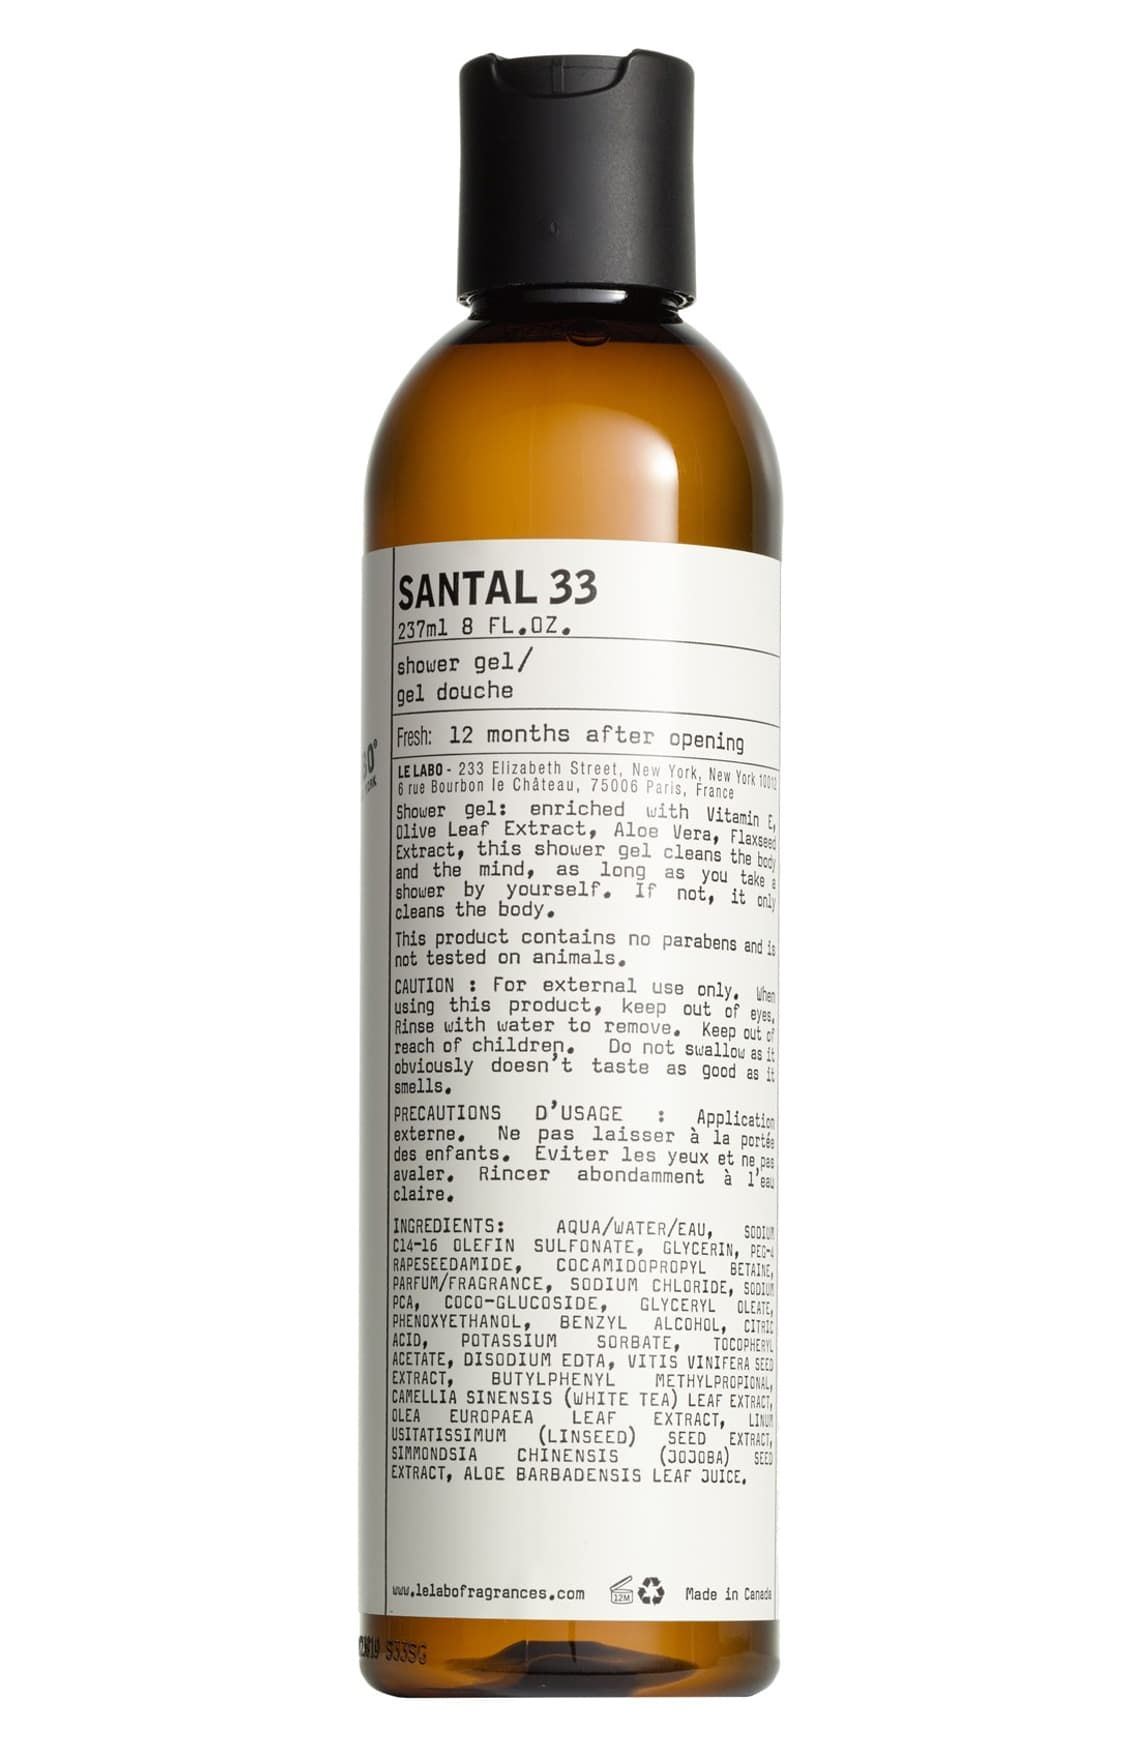 Le Labo Santal 33 Shower Gel Nordstrom Shower Gel Gel Paraben Free Products